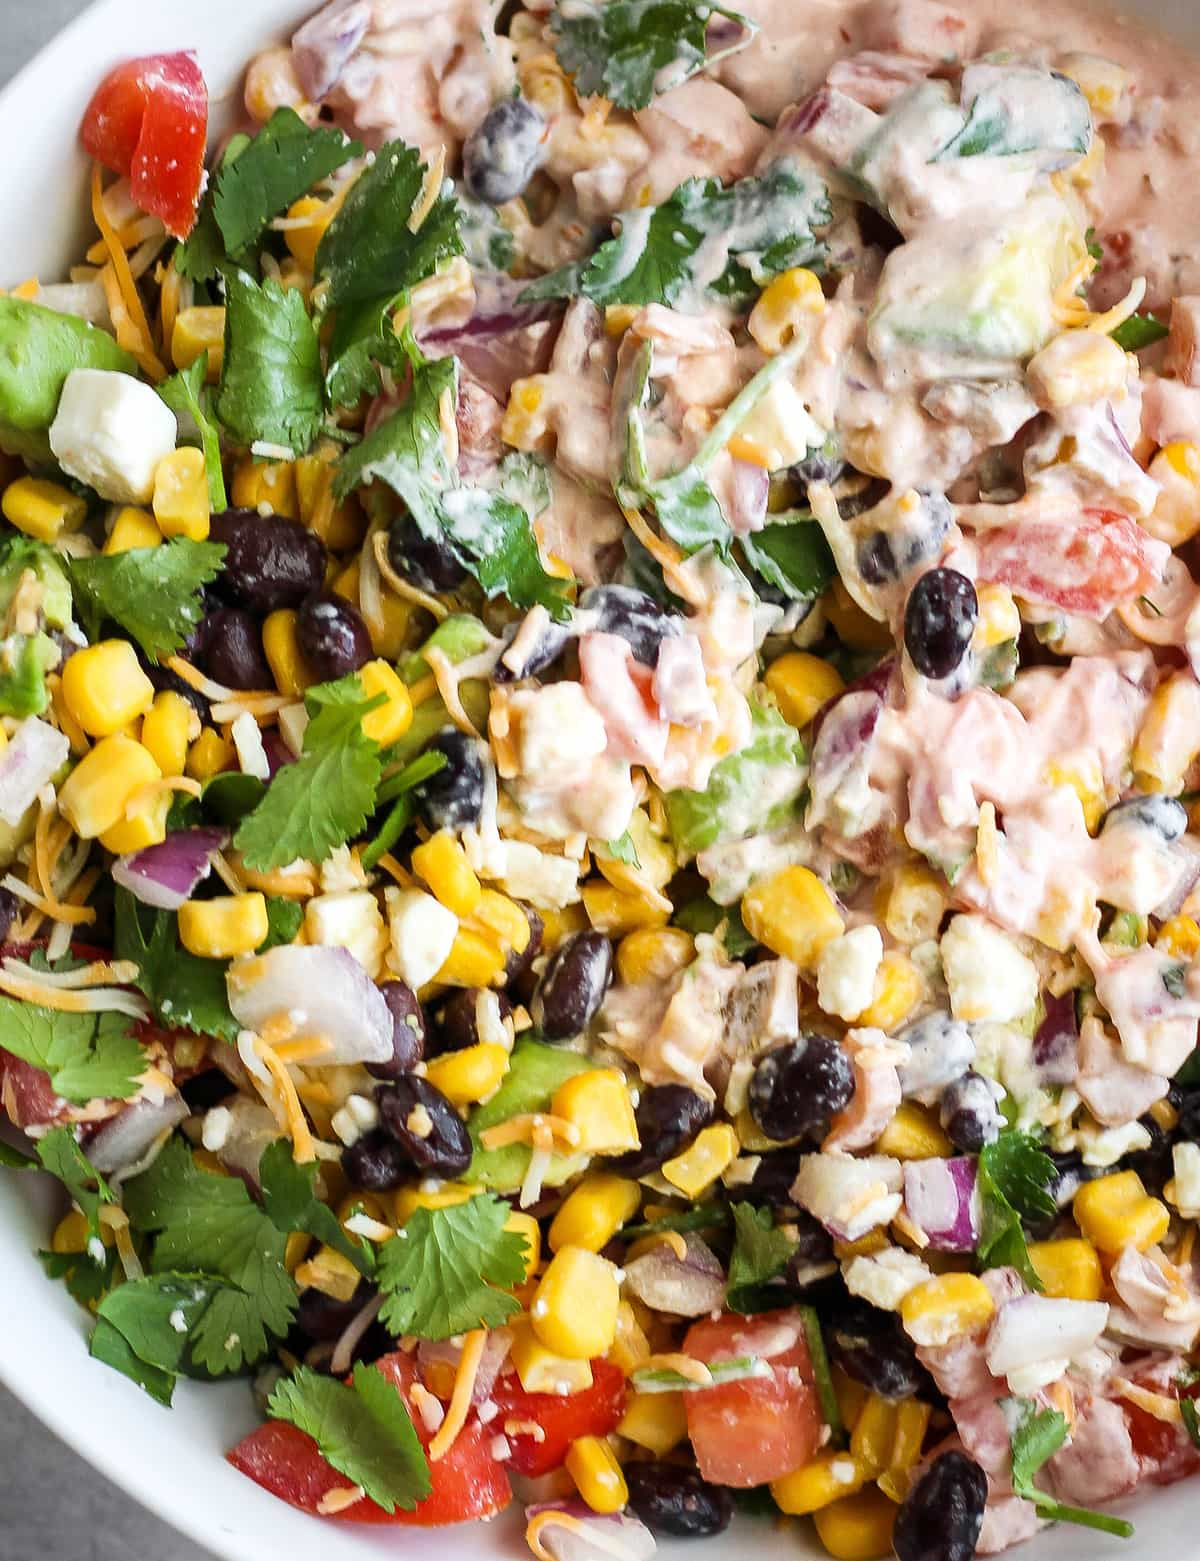 fiesta mexican dip mix with black beans, cilantro, corn, and more